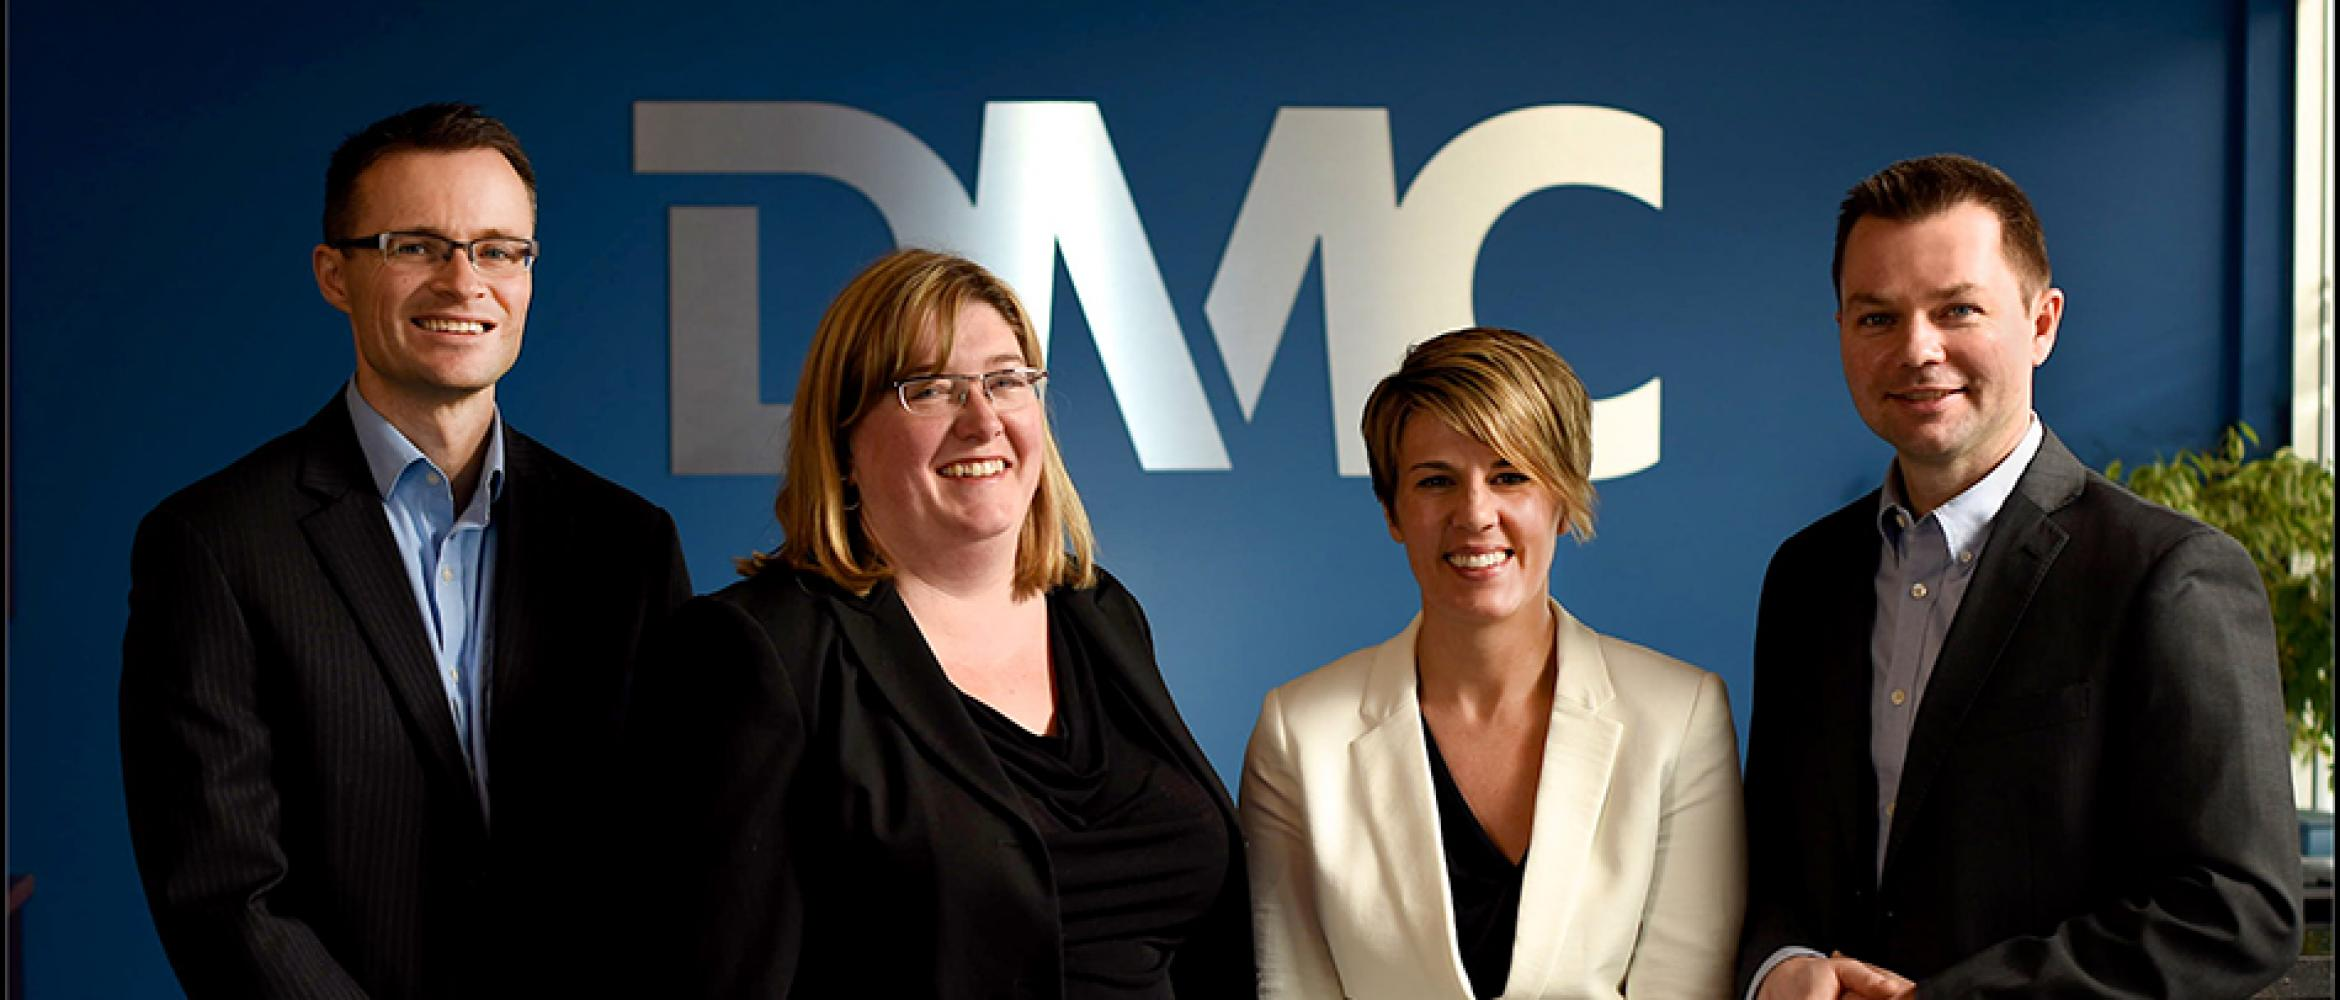 DMC Chartered Professional Accountants Inc.